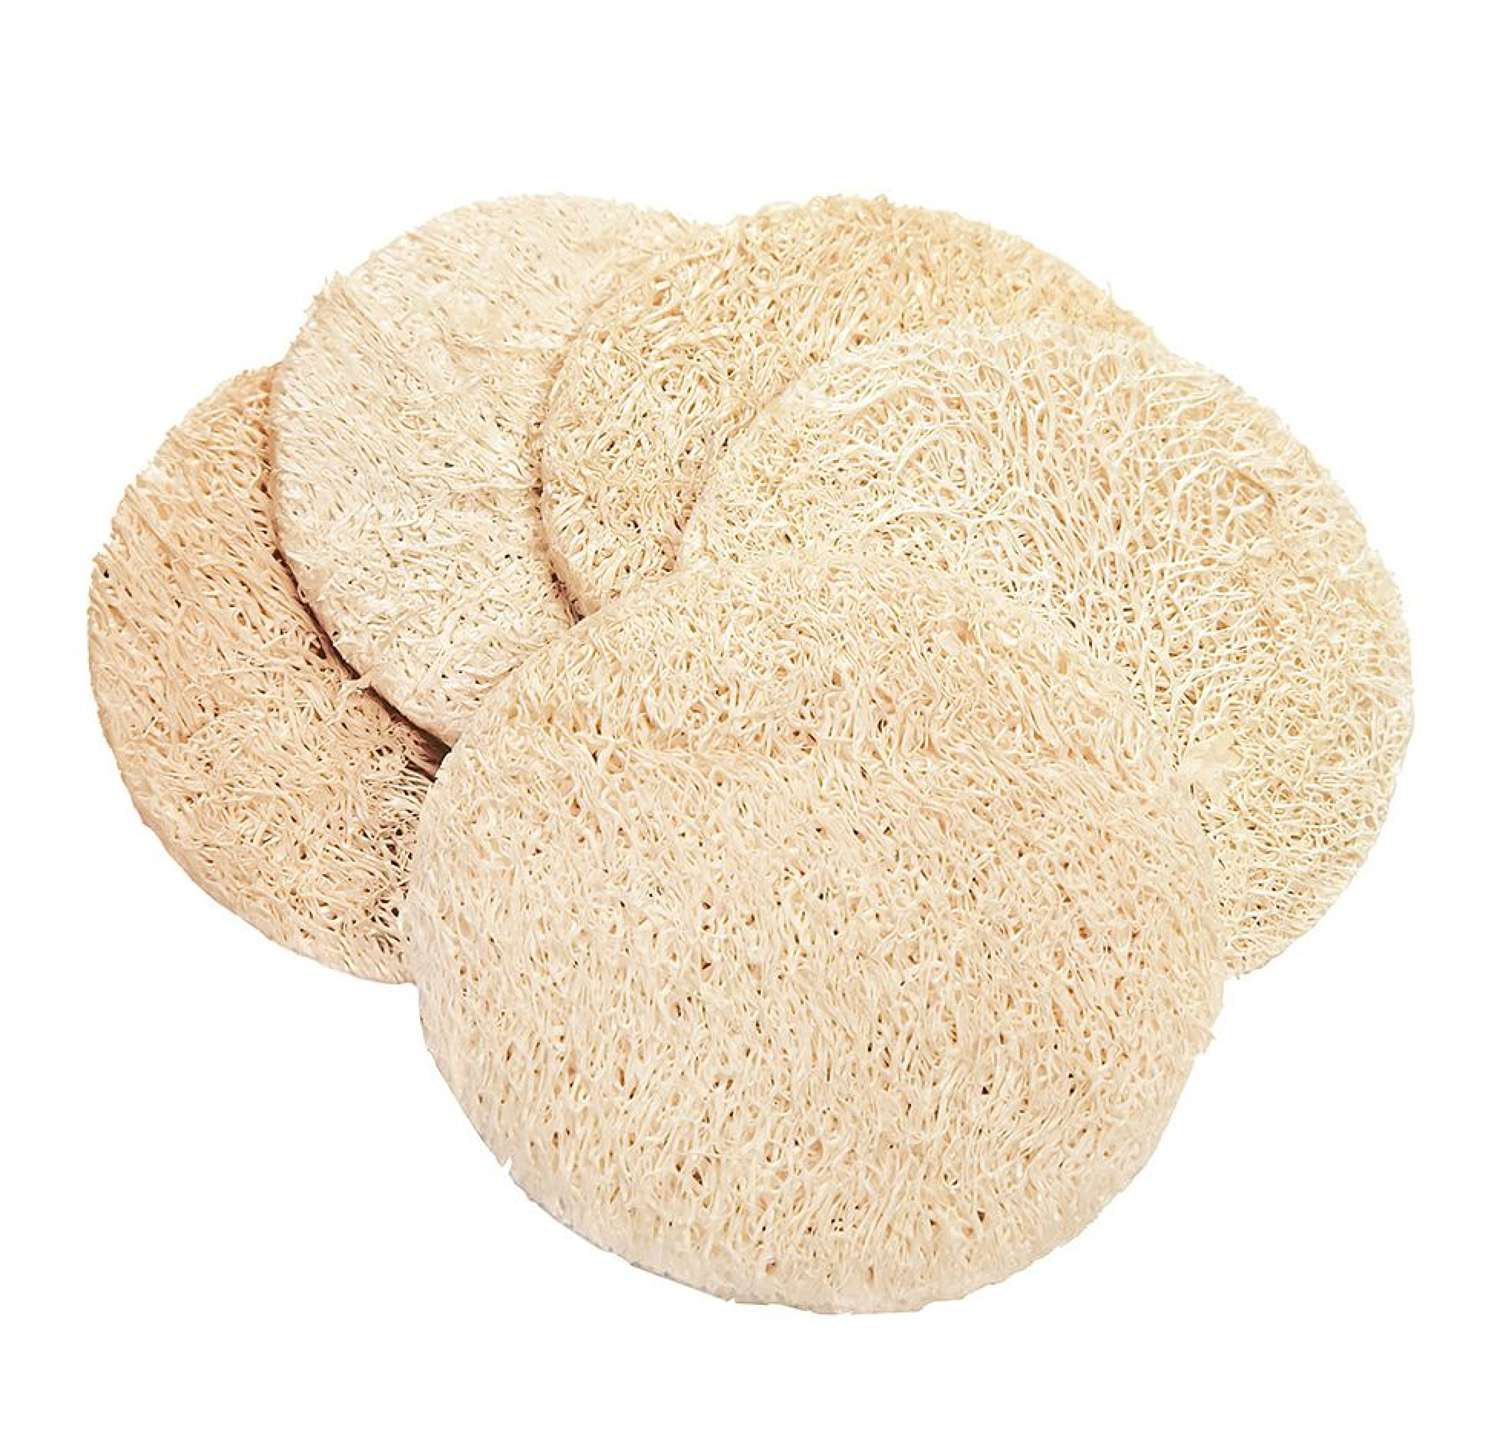 Round Loofah exfoliating pads - Pack of 5 pads